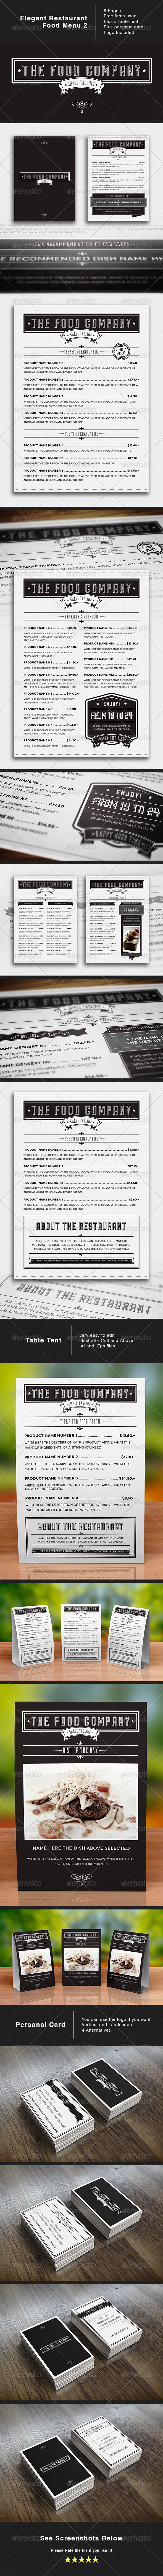 The Food Company Menu - Food Menus Print Templates